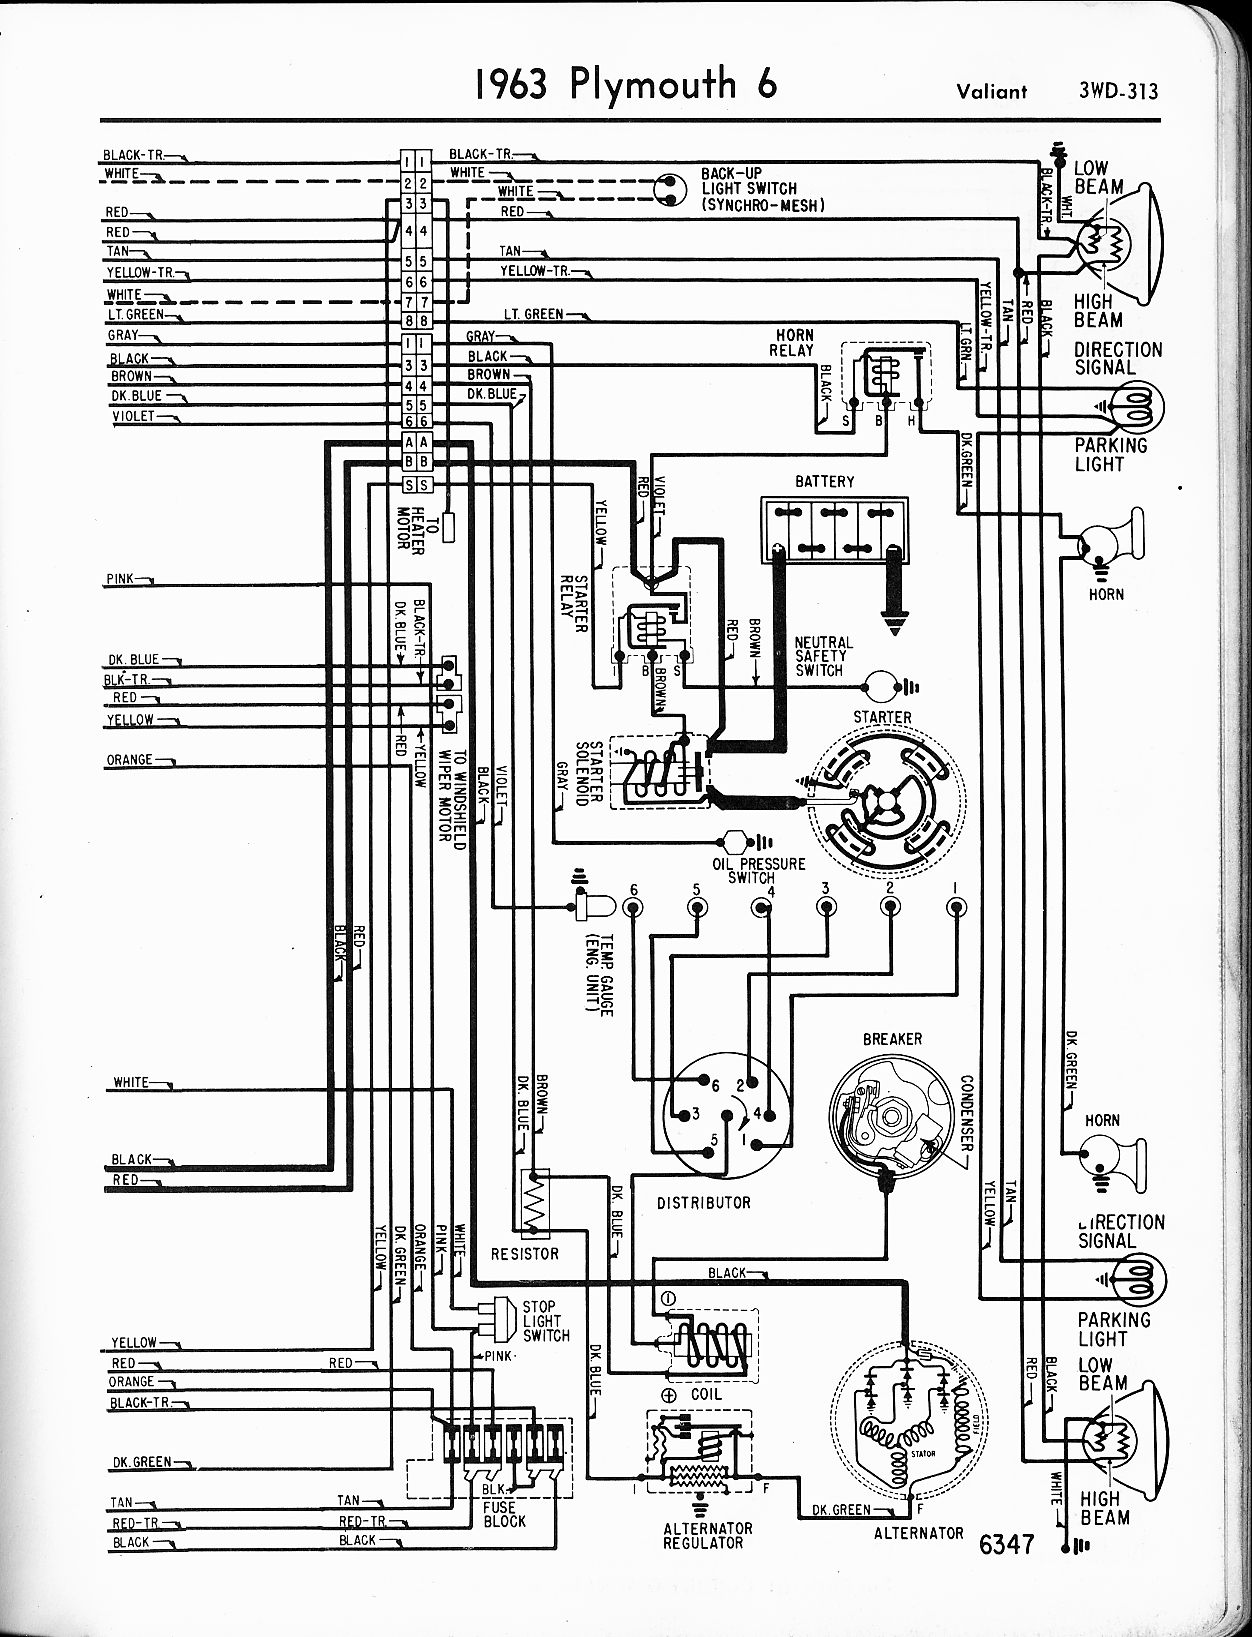 E Schematic Wiring Diagram Will Be A Thing Ex250 1956 Chrysler Opinions About U2022 Rh Voterid Co Refrigerator